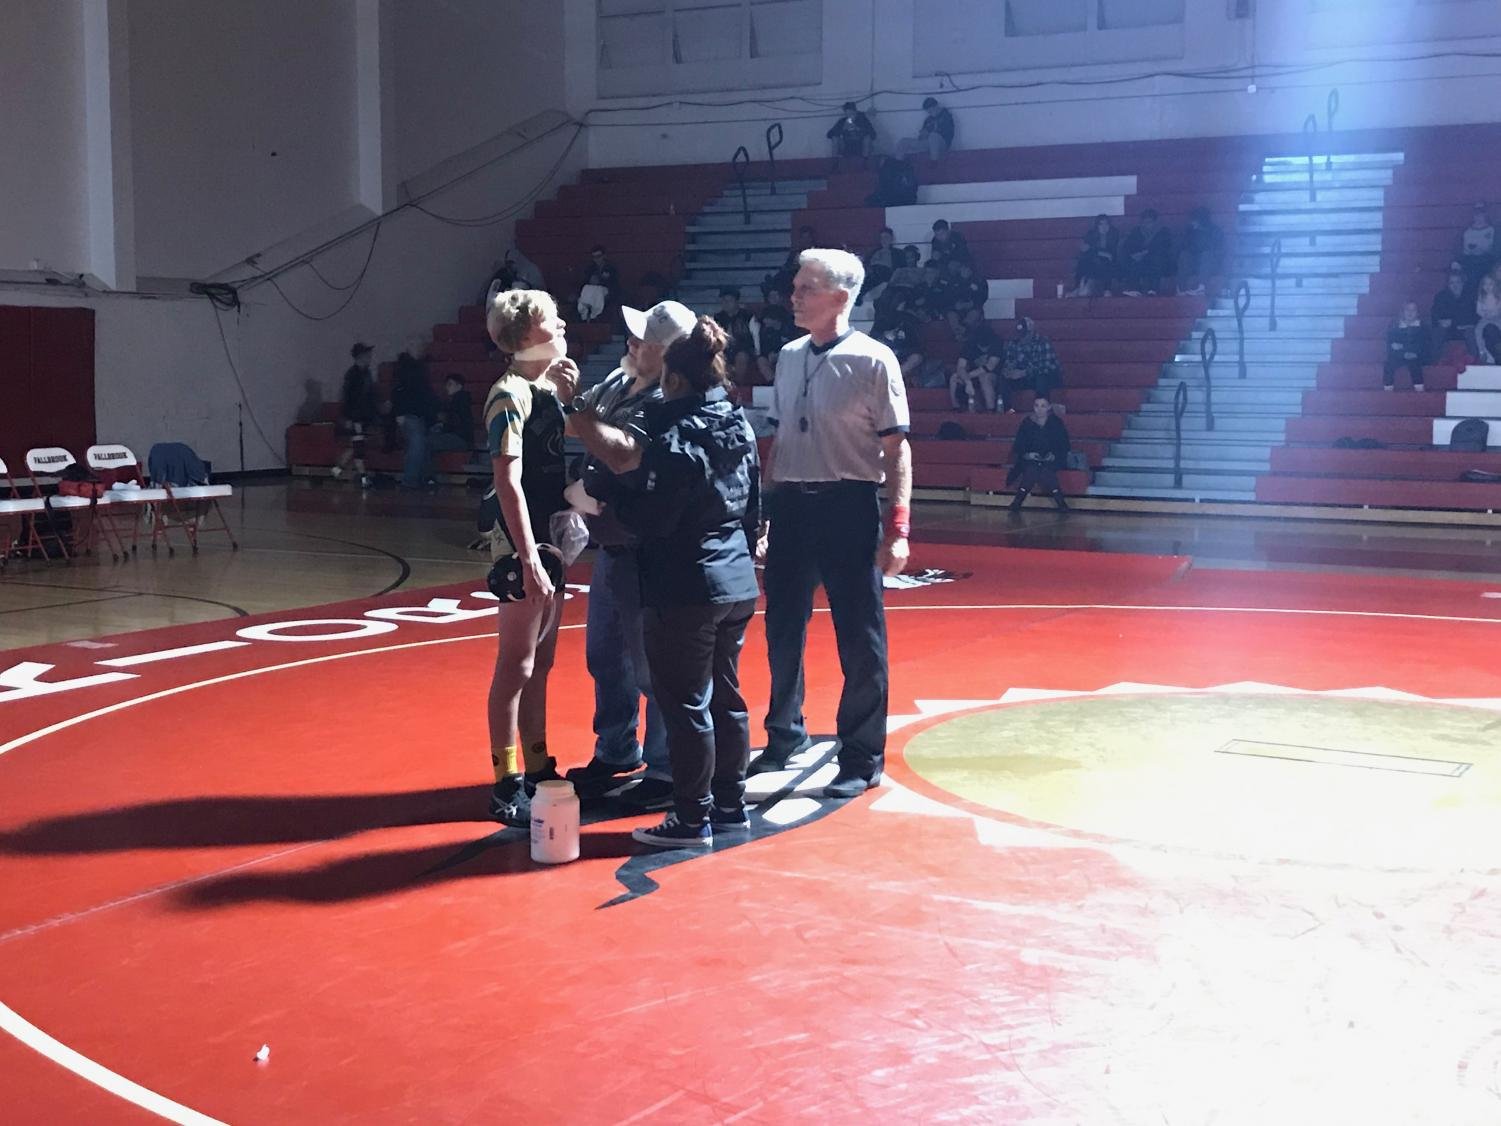 Freshman+wrestler+Peter+Rubin+gets+his+lip+taped+by+Coach+Brian+Kirby+as+the+referee+and+Fallbrook+athletic+trainer+watch.+On+Thursday%2C+Dec.+6%2C+wrestling+had+a+tri-duel+against+Fallbrook+and+Army+Navy+in+which+Rubin+busted+his+lip.+After+the+referee+stopped+the+match+two+times+due+to+the+blood%2C+Kirby+decided+to+tape+Rubin%E2%80%99s+mouth+closed+in+order+to+stop+the+blood.+Rubin+won+both+matches+with+a+pin.